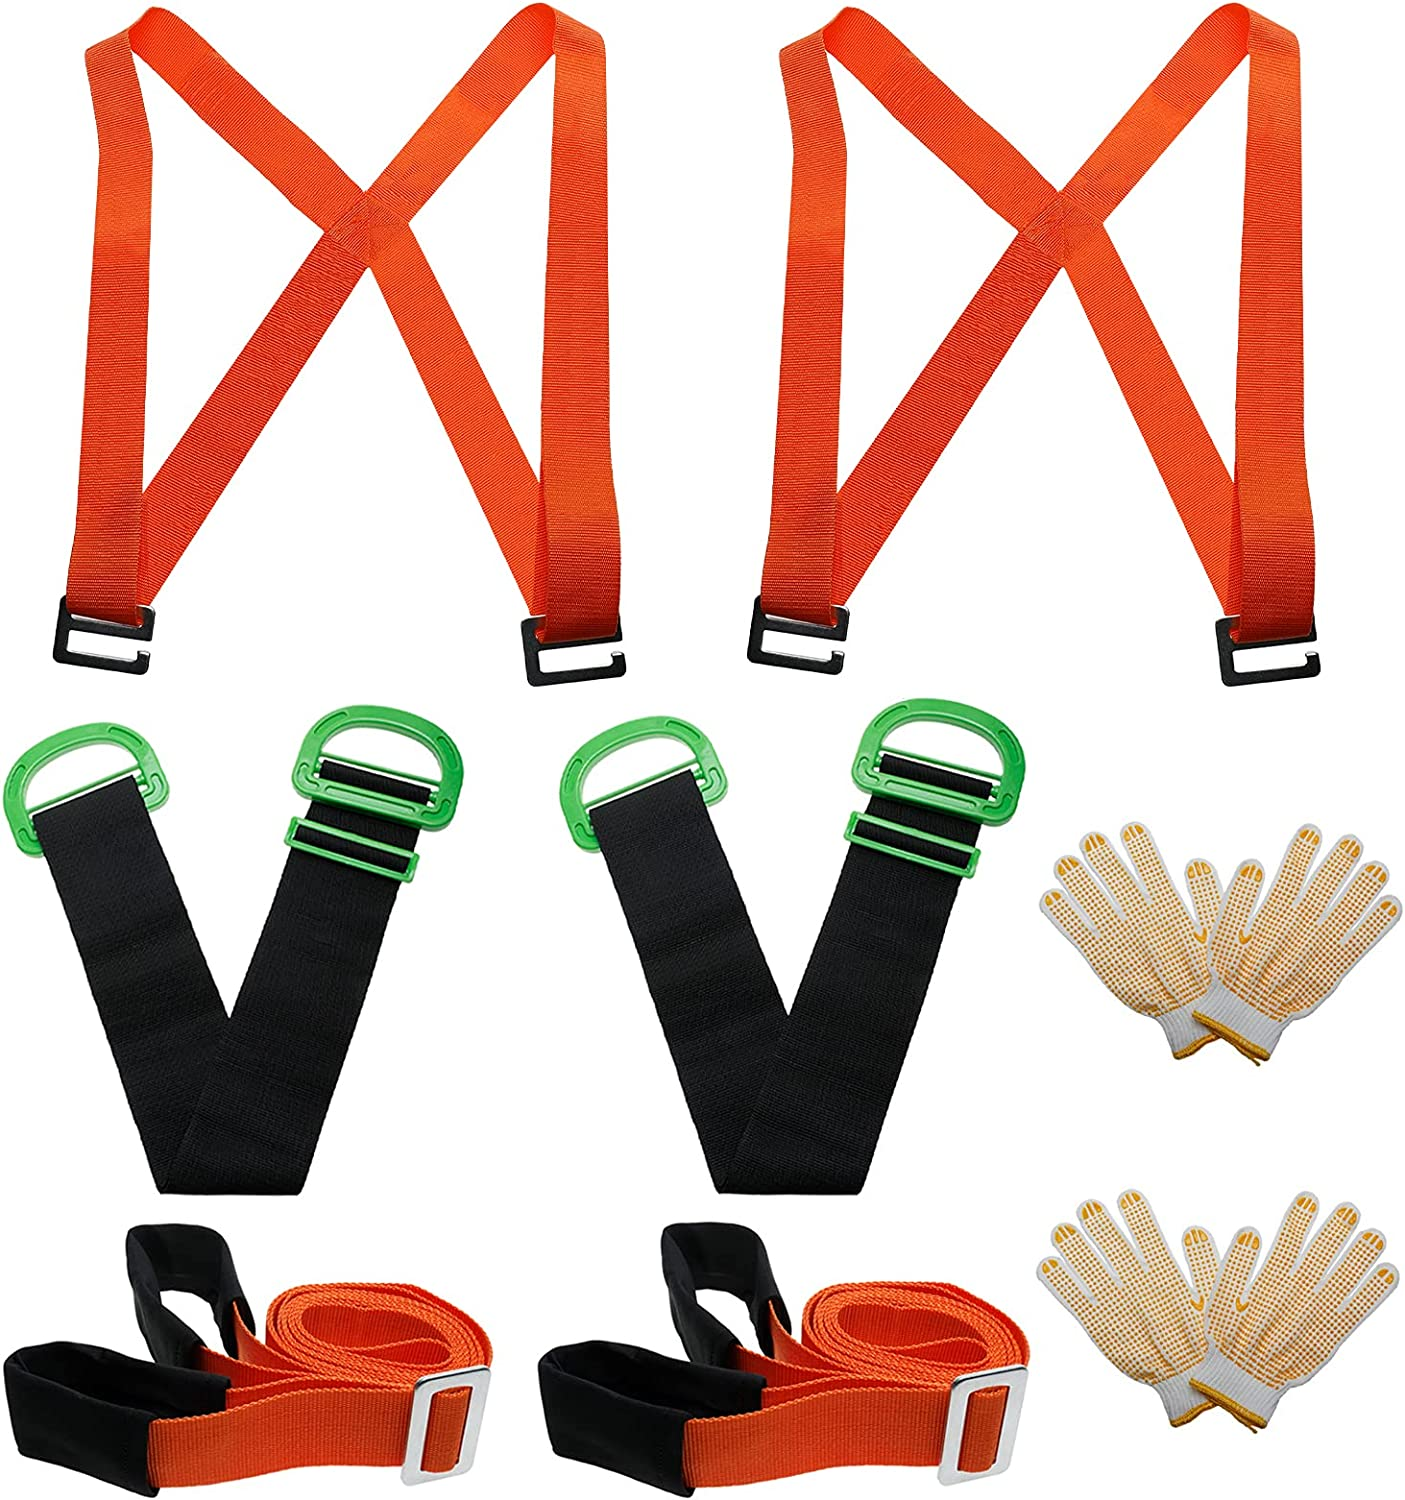 Furniture Moving Straps, 2-Person Shoulder Lifting and 2-Person Moving System for House-Moving, Furniture, Appliances, Heavy Objects Moving